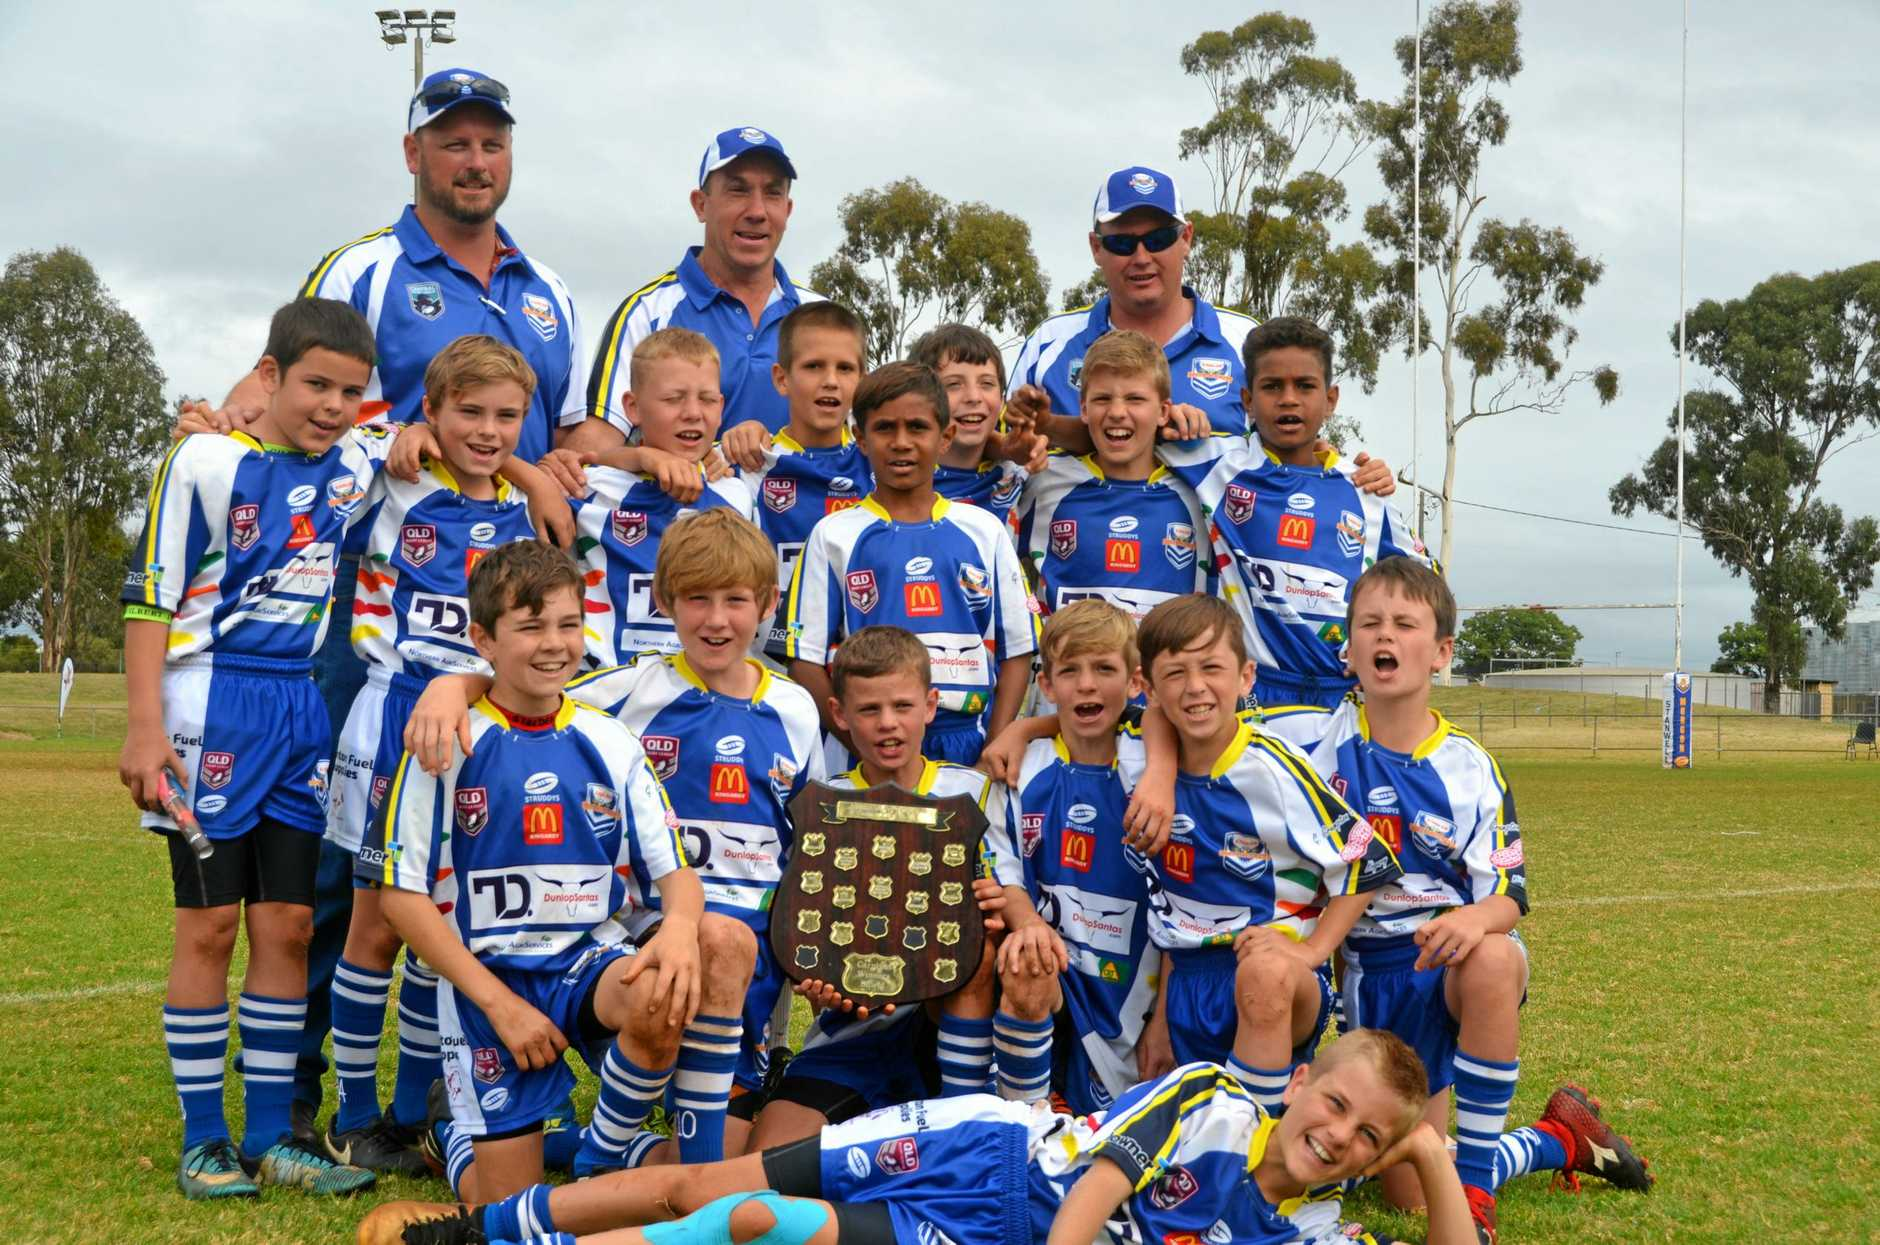 READY TO DEFEND: The South Burnett U35g team at the zone five carnival last year in Kingaroy.